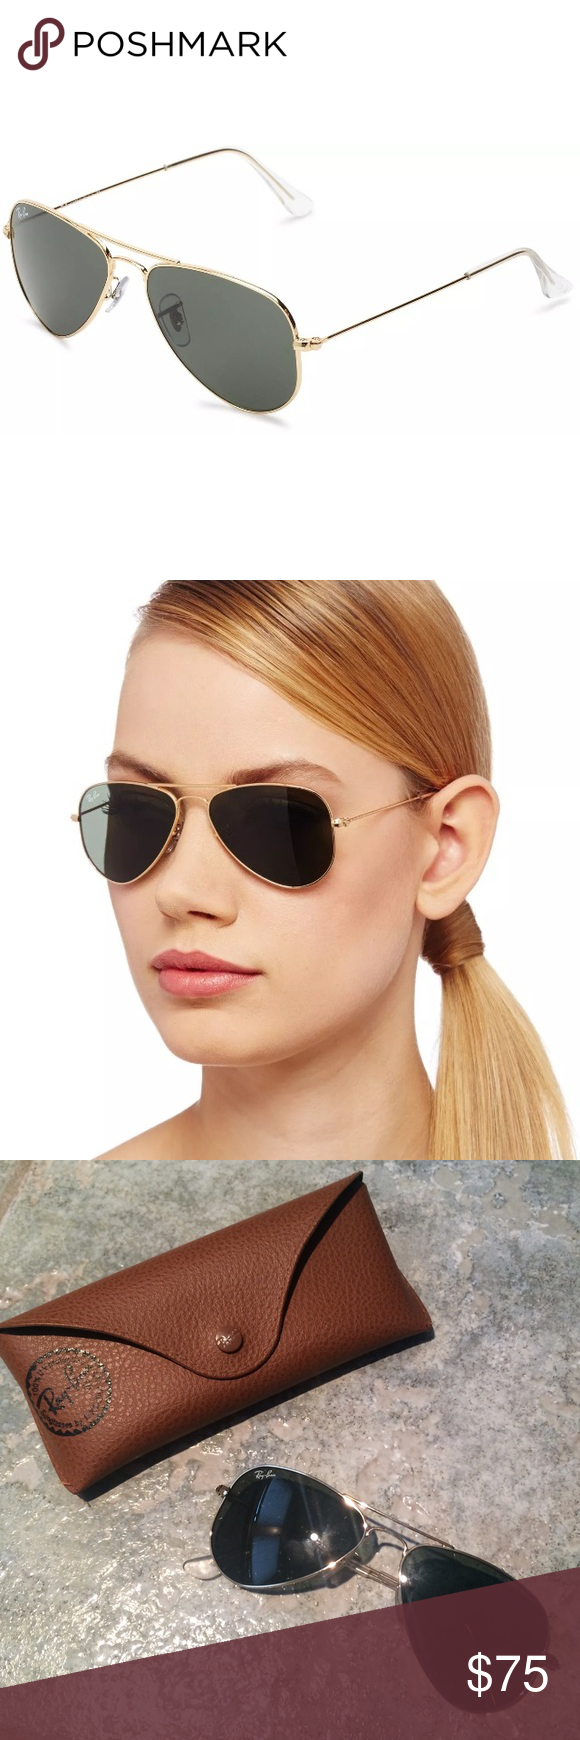 Aviator sunglasses for small face - Rb 3044 Ray Ban Small Aviators